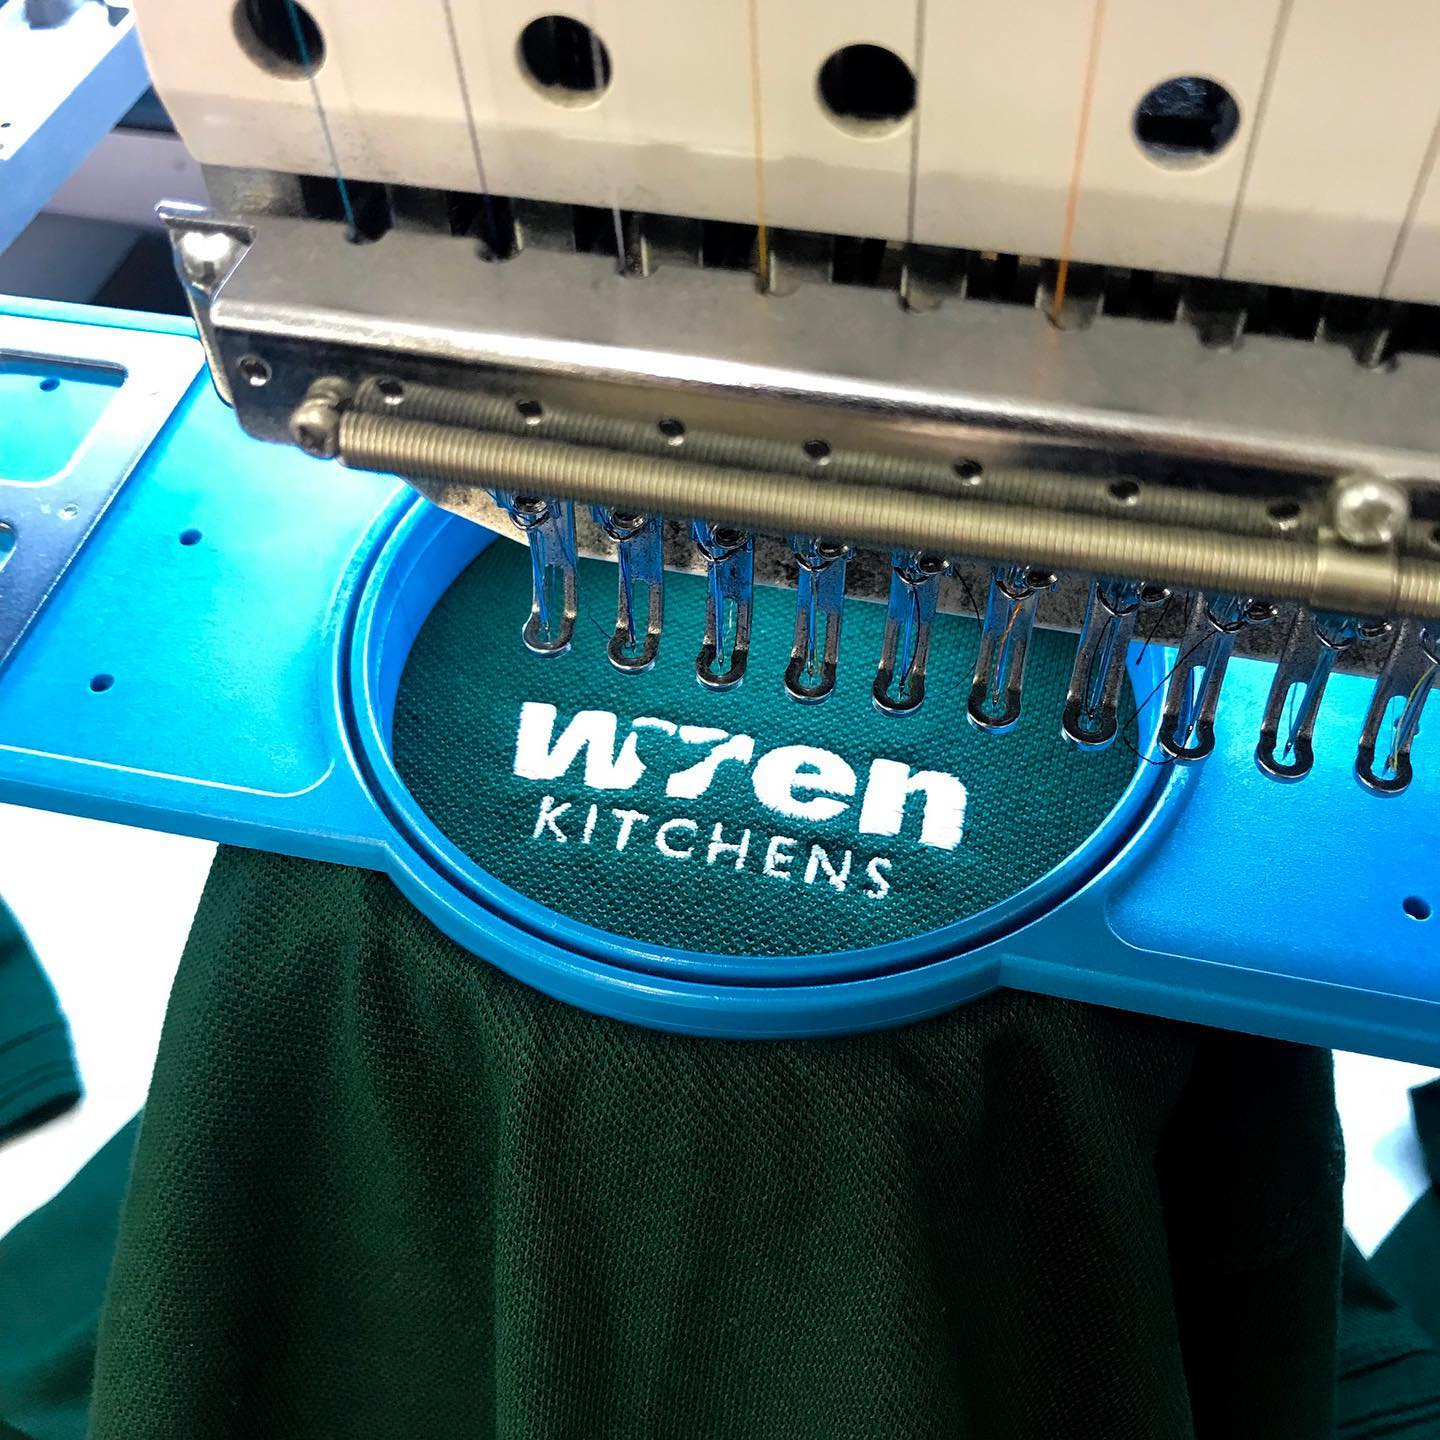 Essential Workwear - Wren Kitchens